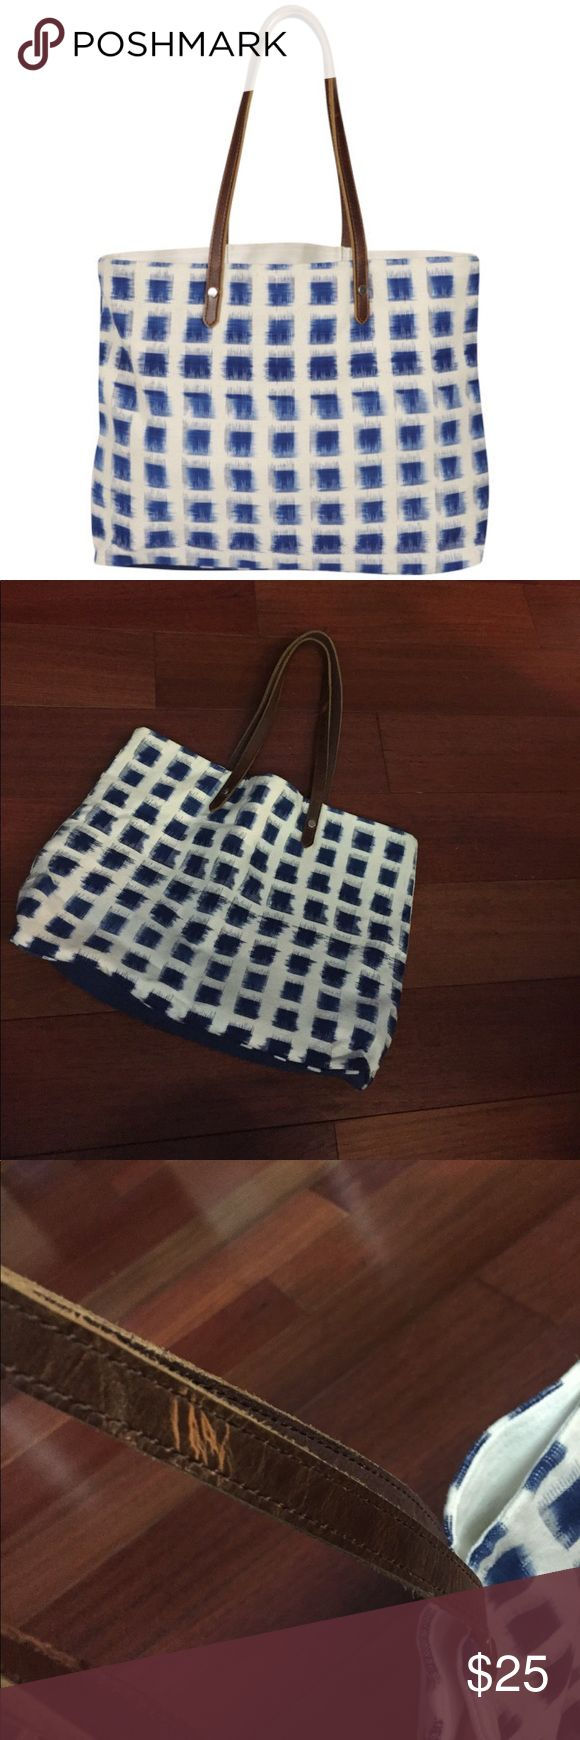 French Connection Ikat Tote Bag Like new! I probably used this a handful of times. I did wash it and the indigo dye seeped into the inside of the bag. No imperfections on the outside though! French Connection Bags Totes